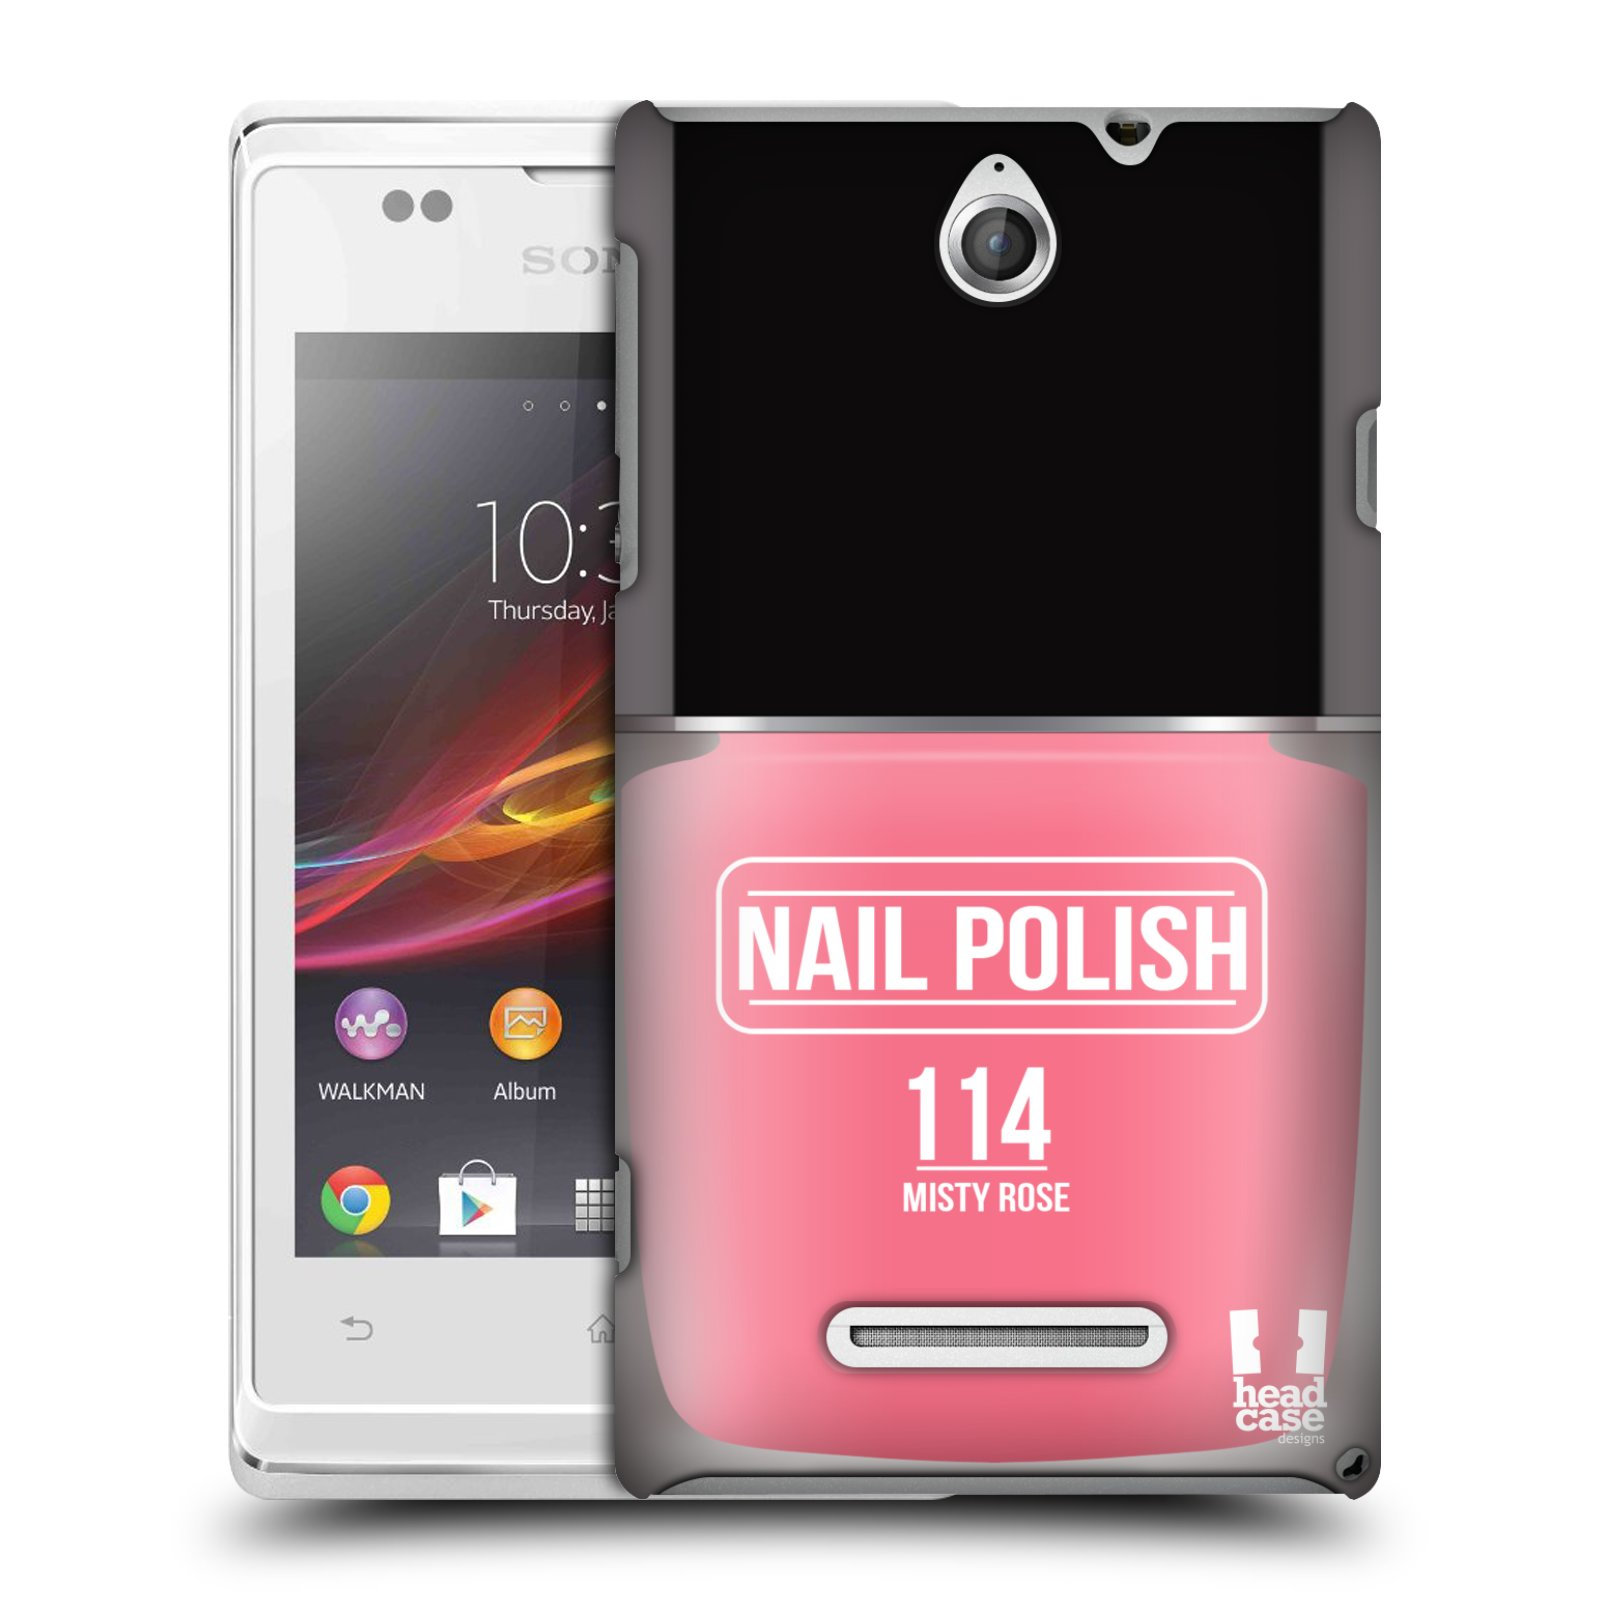 HEAD CASE DESIGNS NAIL POLISH CASE COVER FOR SONY XPERIA E DUAL C1605 C1505